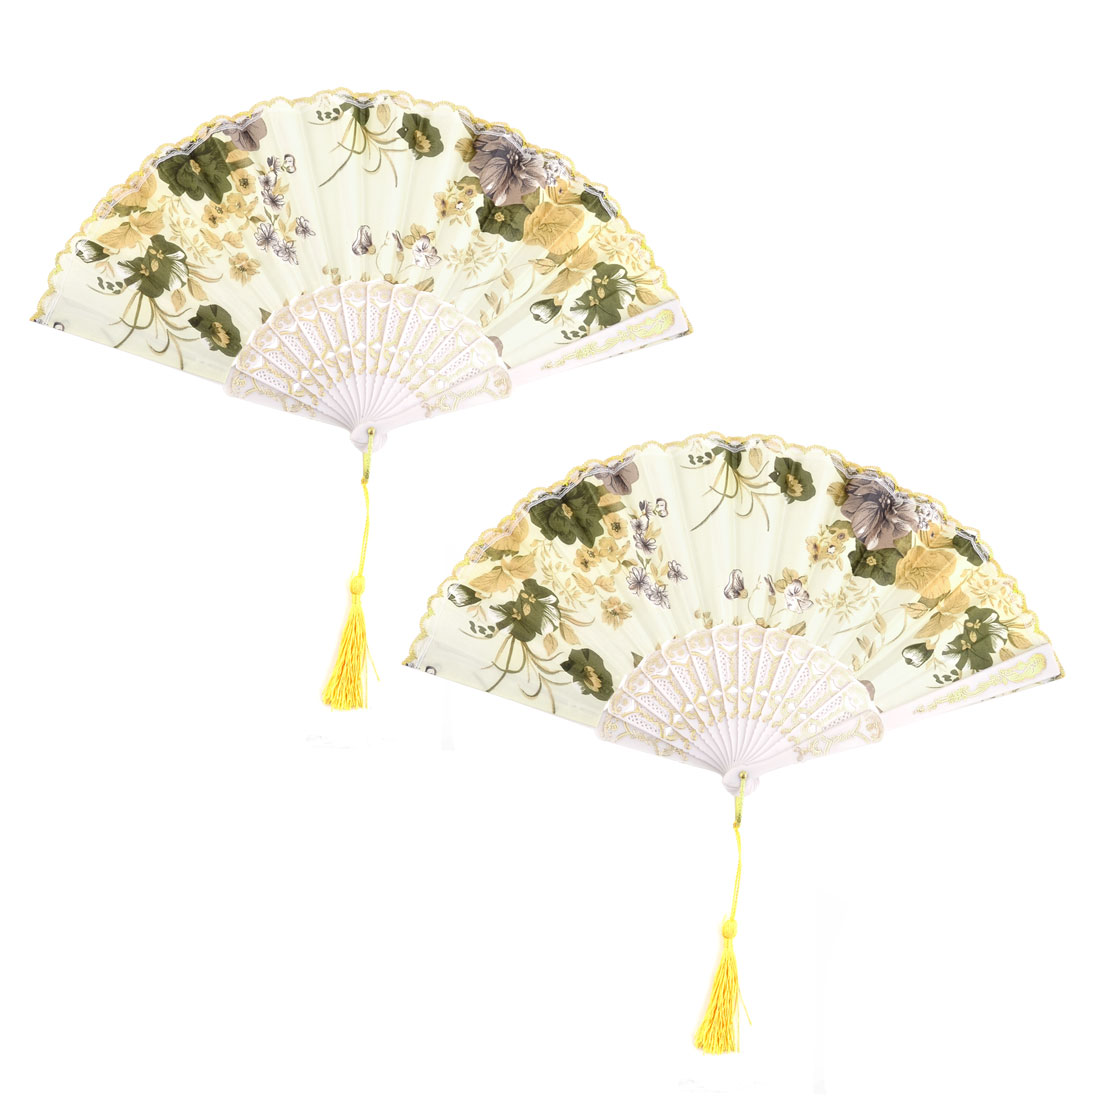 Household Wedding Plastic Flower Pattern Folding Cooling Hand Fan 23.5cm Length - image 5 of 5